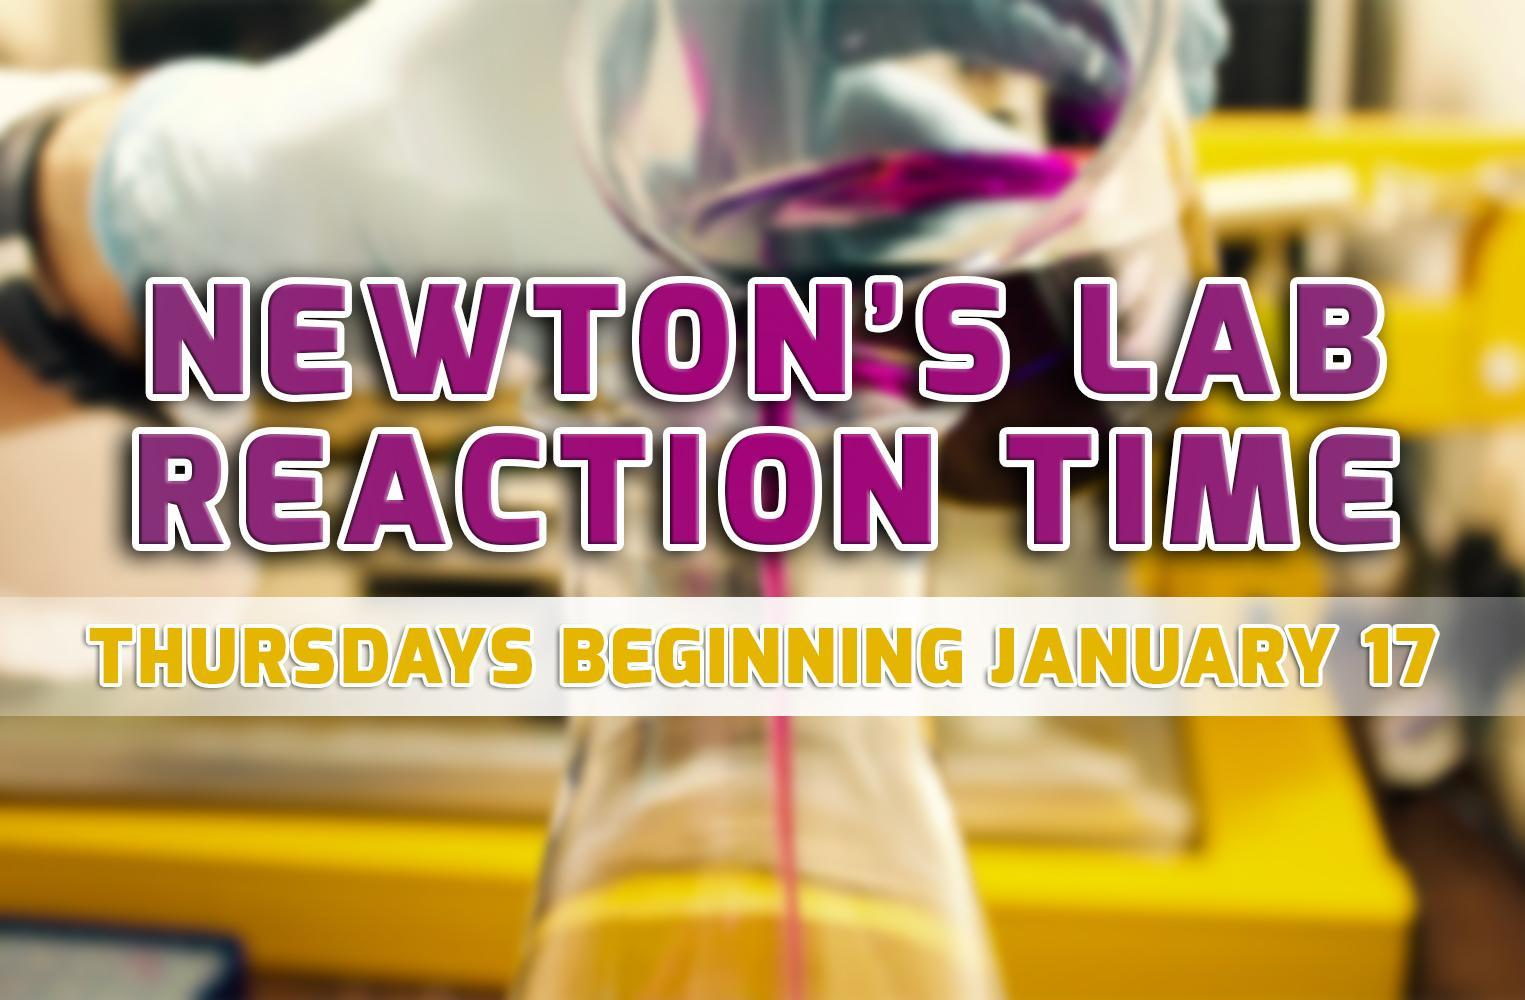 Newton's Lab Reaction Time